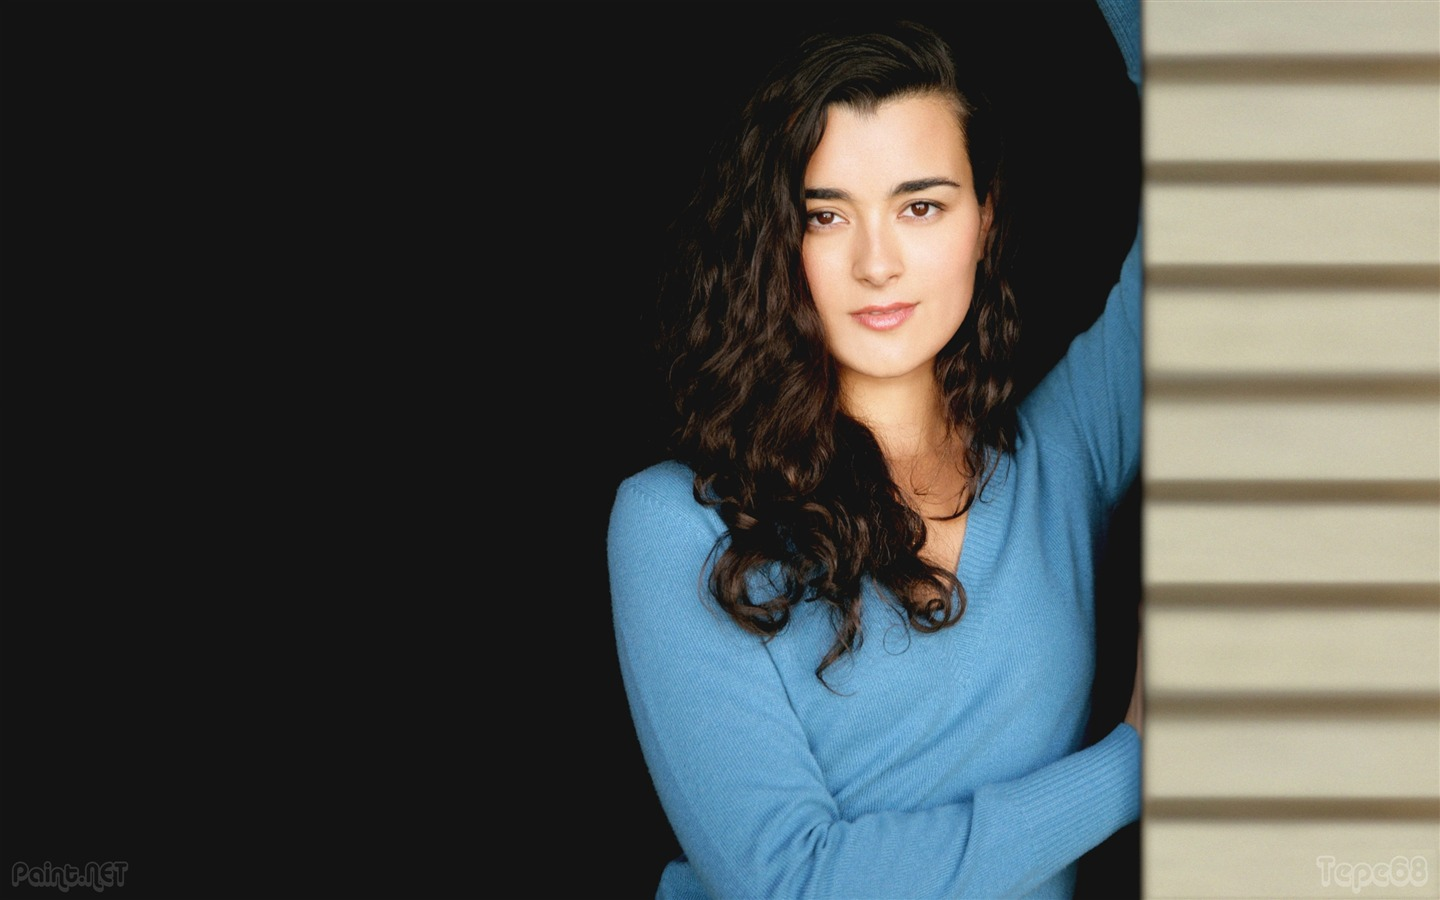 Cote de Pablo #014 - 1440x900 Wallpapers Pictures Photos Images